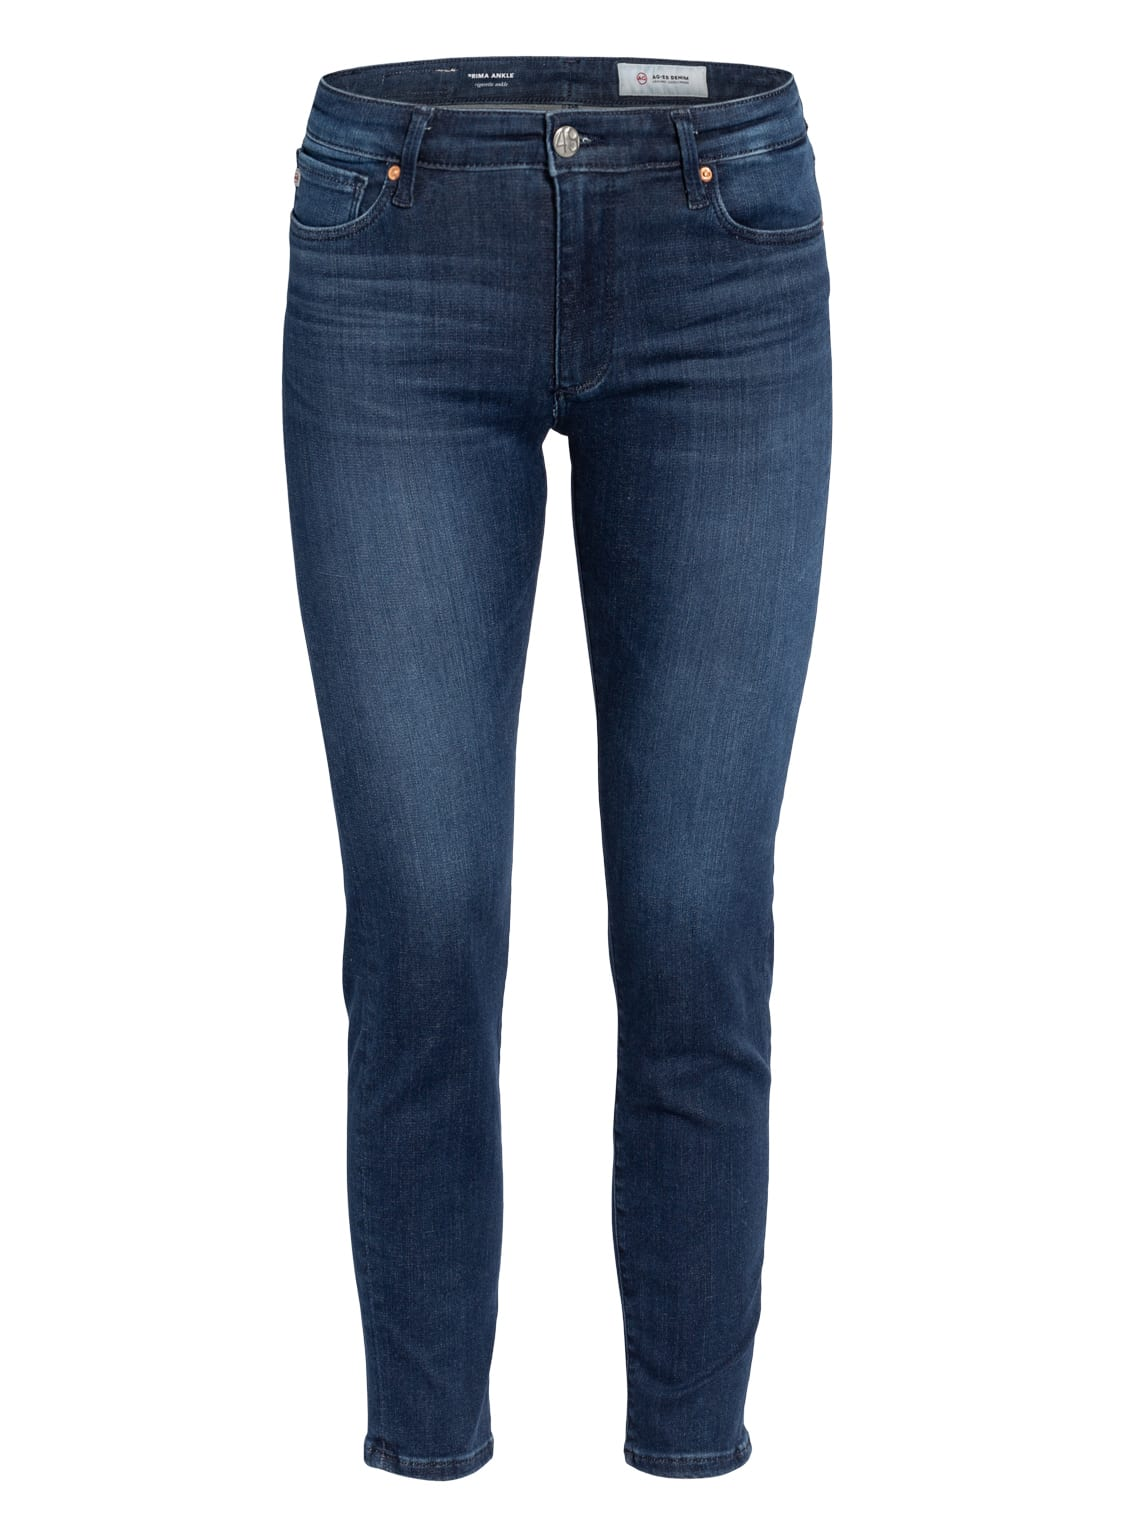 Image of Ag Jeans 7/8-Jeans Prima blau